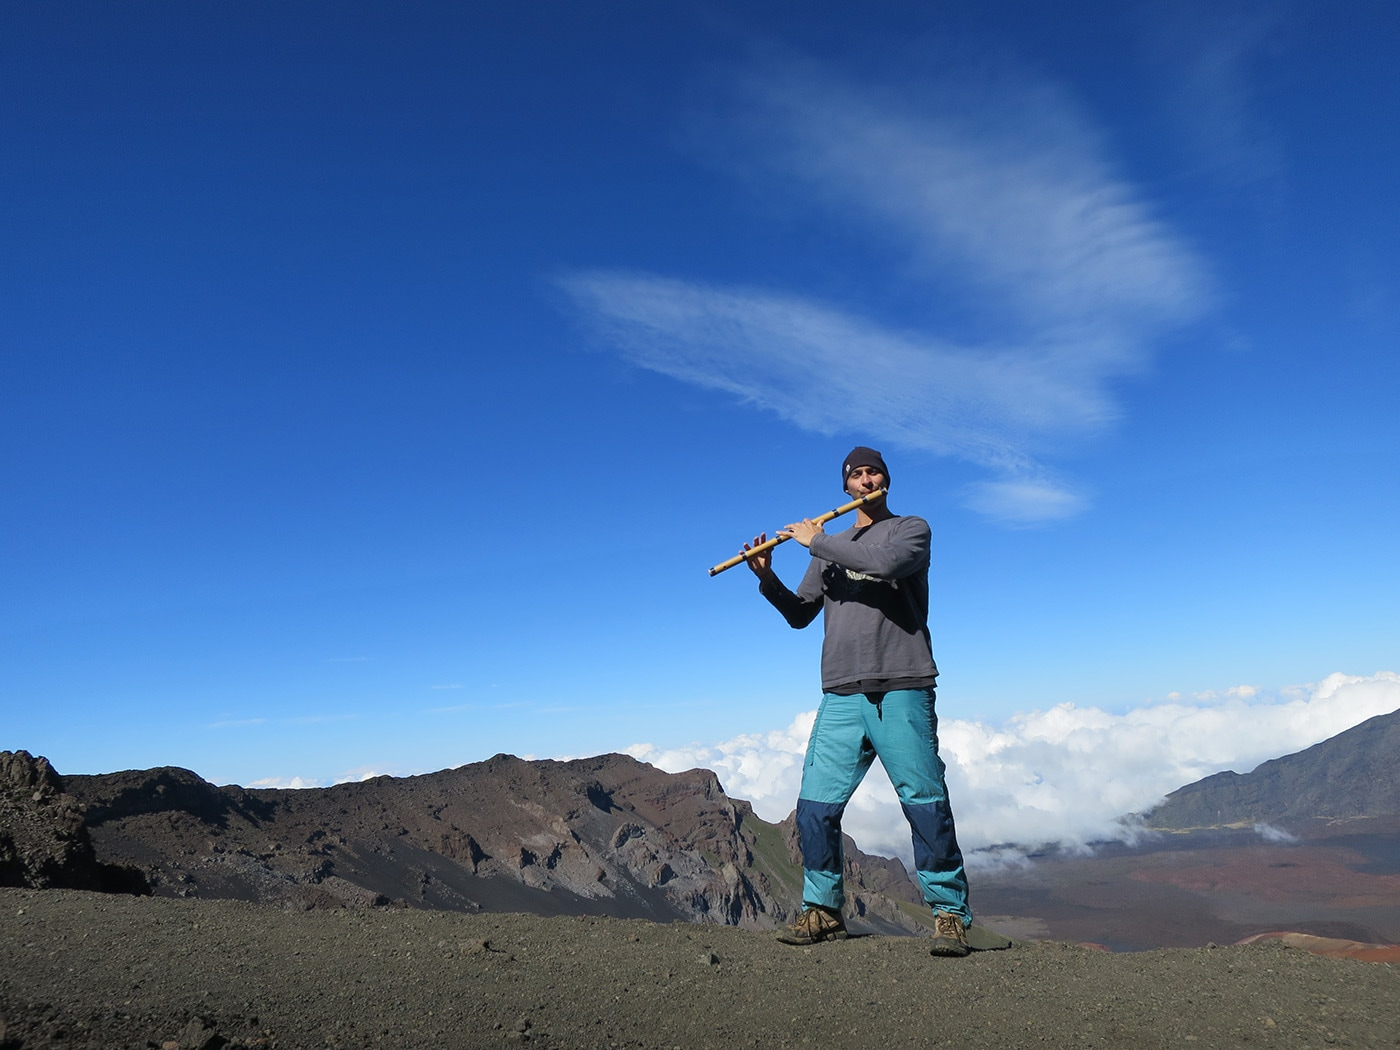 USA Hawaii Maui - Kerry Kriger Haleakala Bansuri 2015 1400